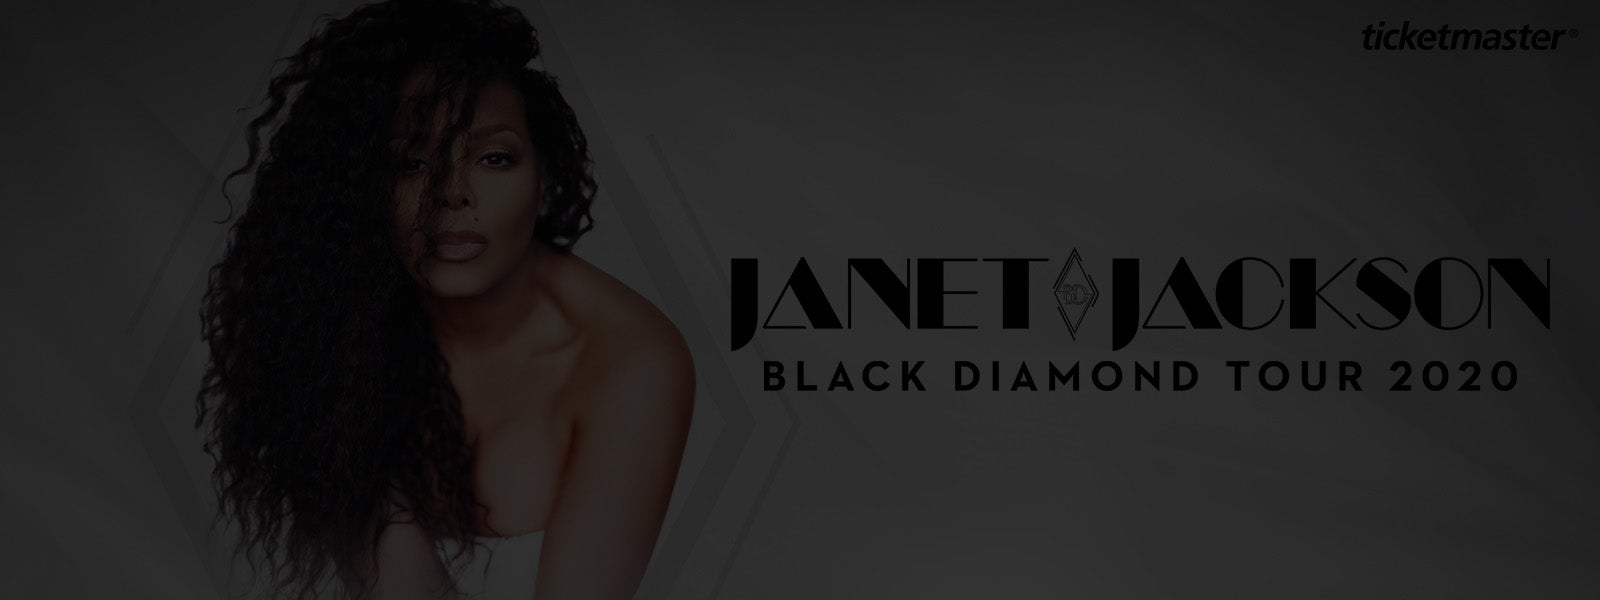 Janet Jackson - Canceled